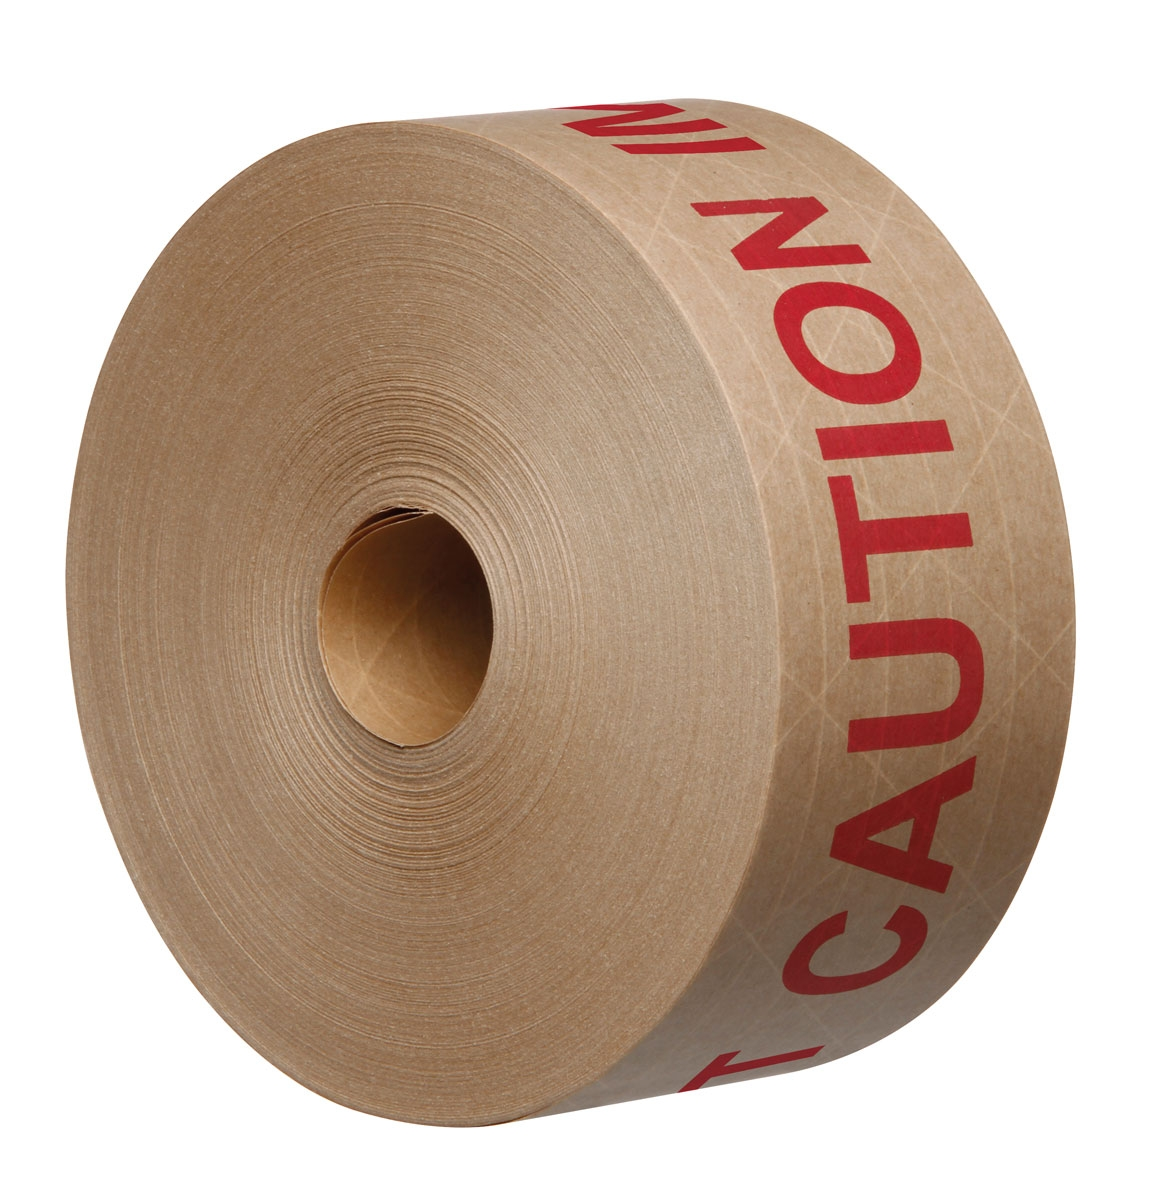 70mm X 150M Reinforced Gummed Paper Tape Printed 'IMPORTANT CAUTION' in Red